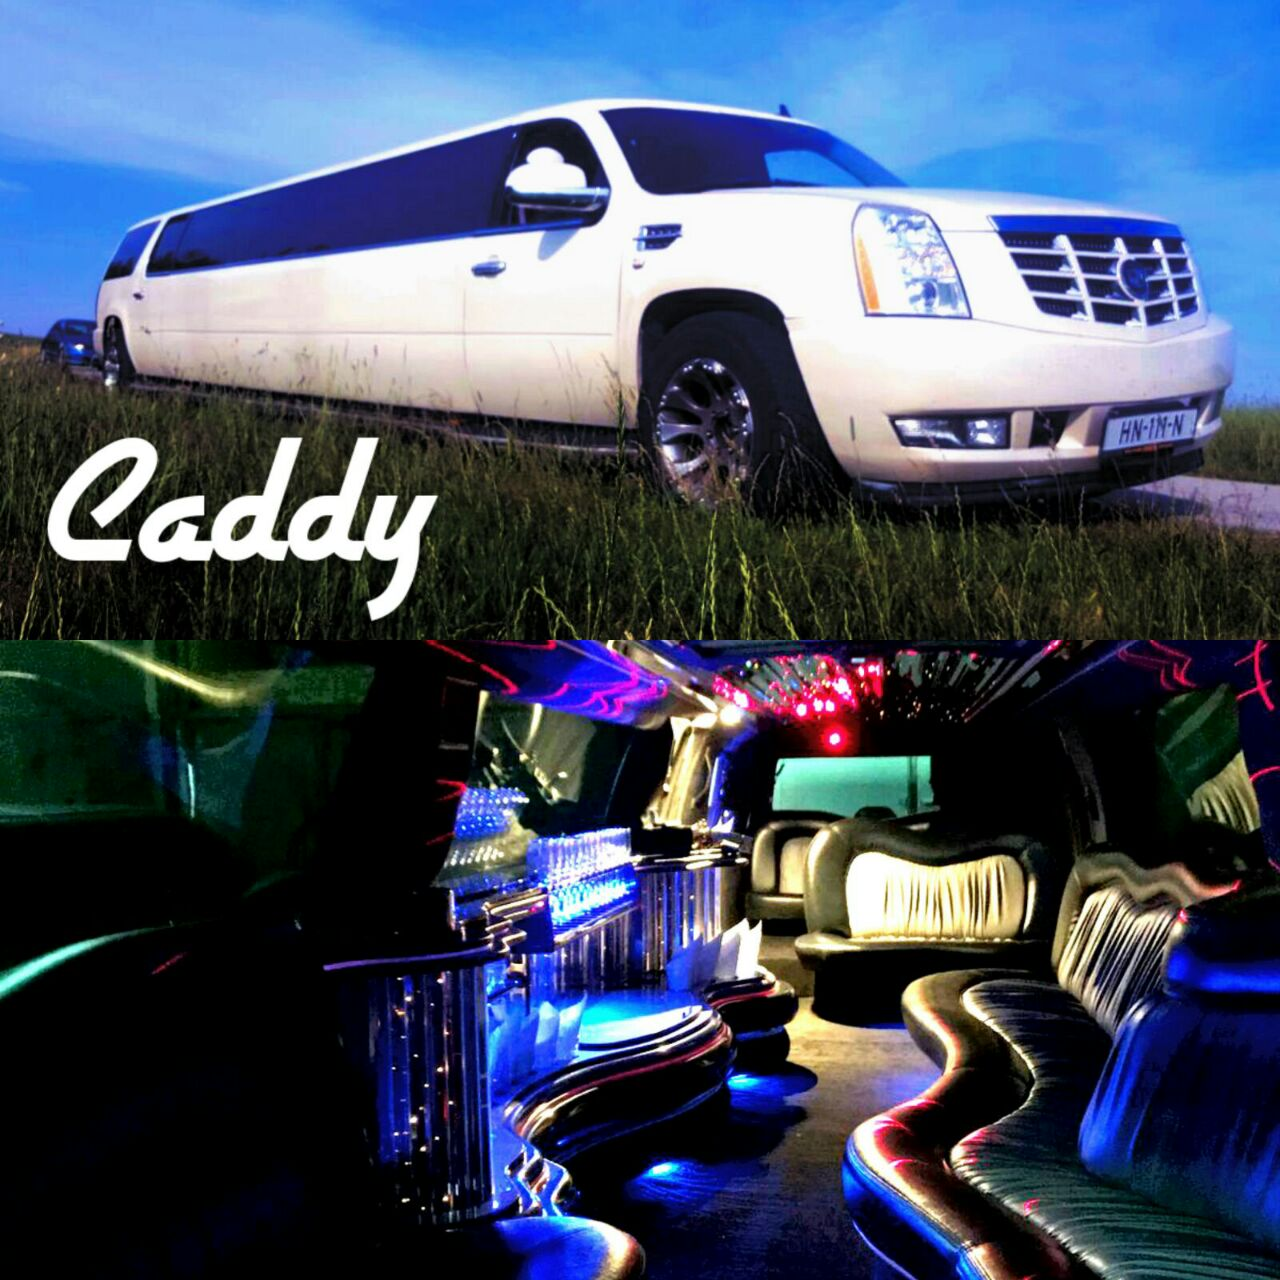 Limousine caddy in romania